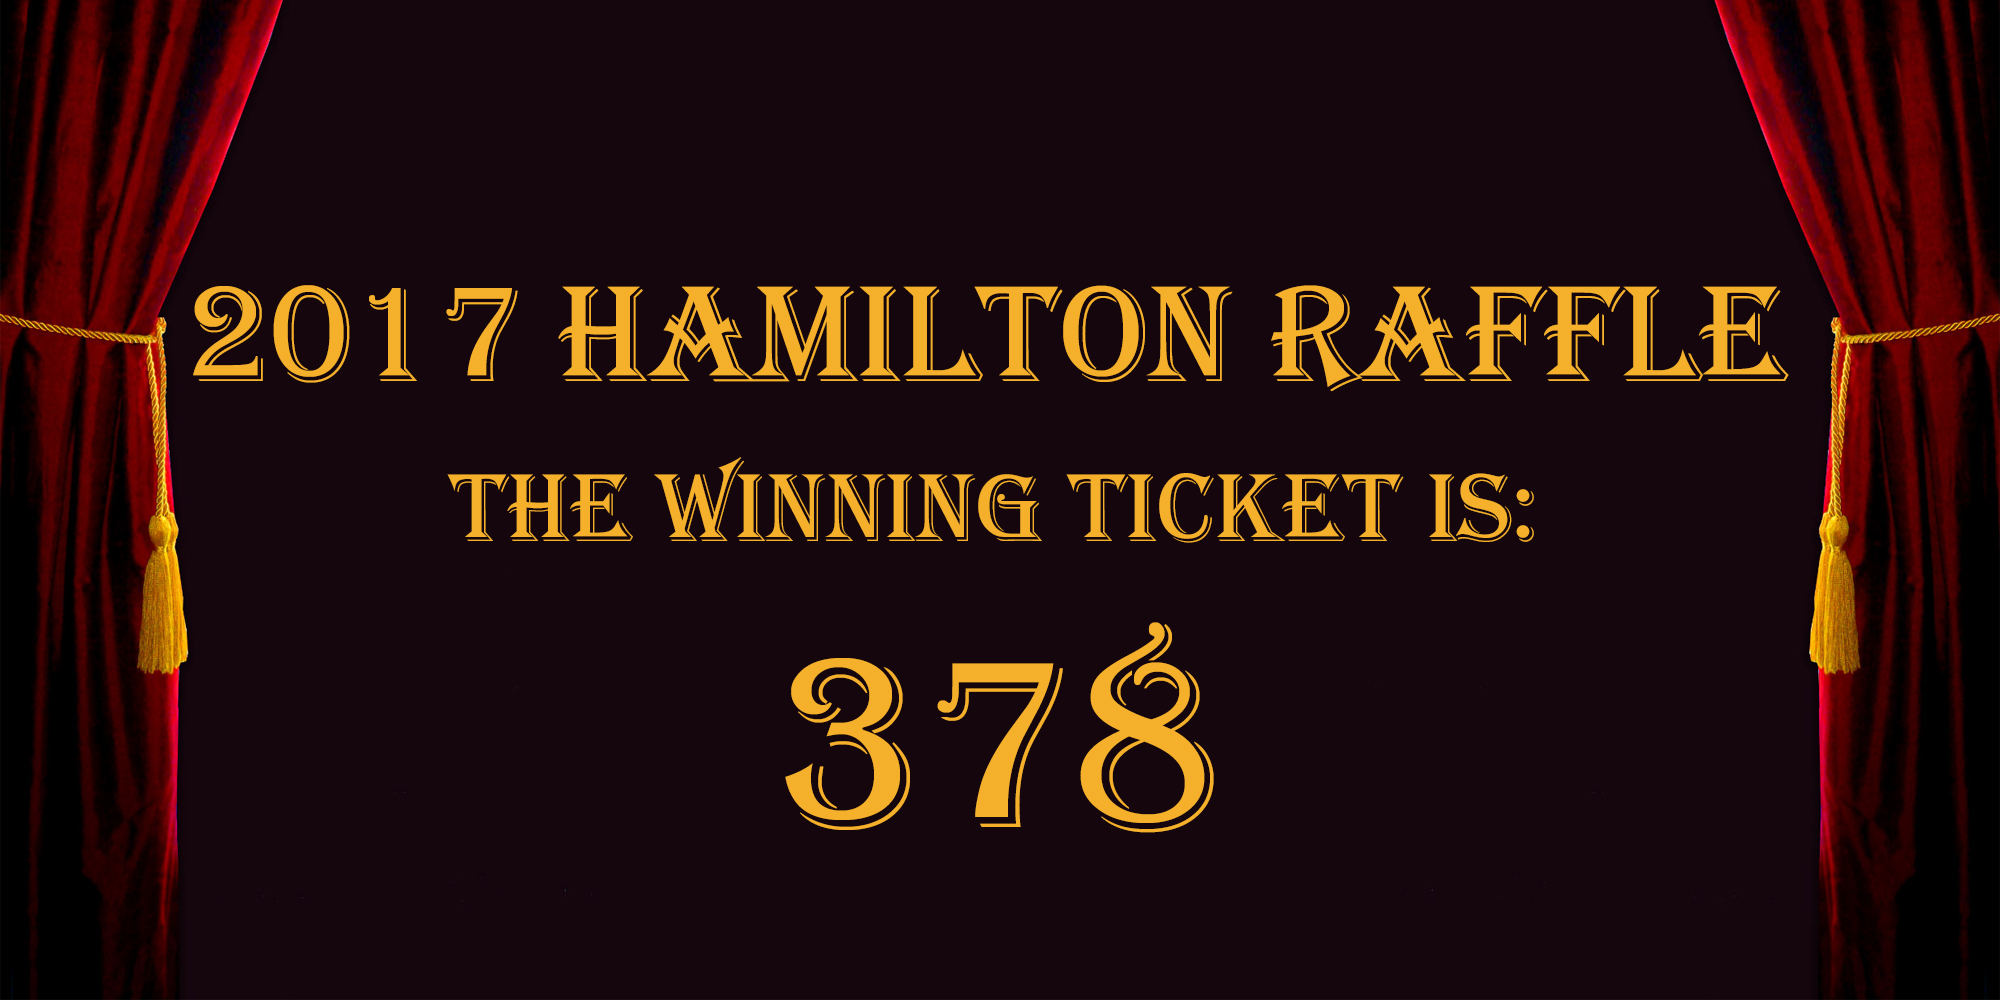 Win a Trip to NYC to see HAMILTON!